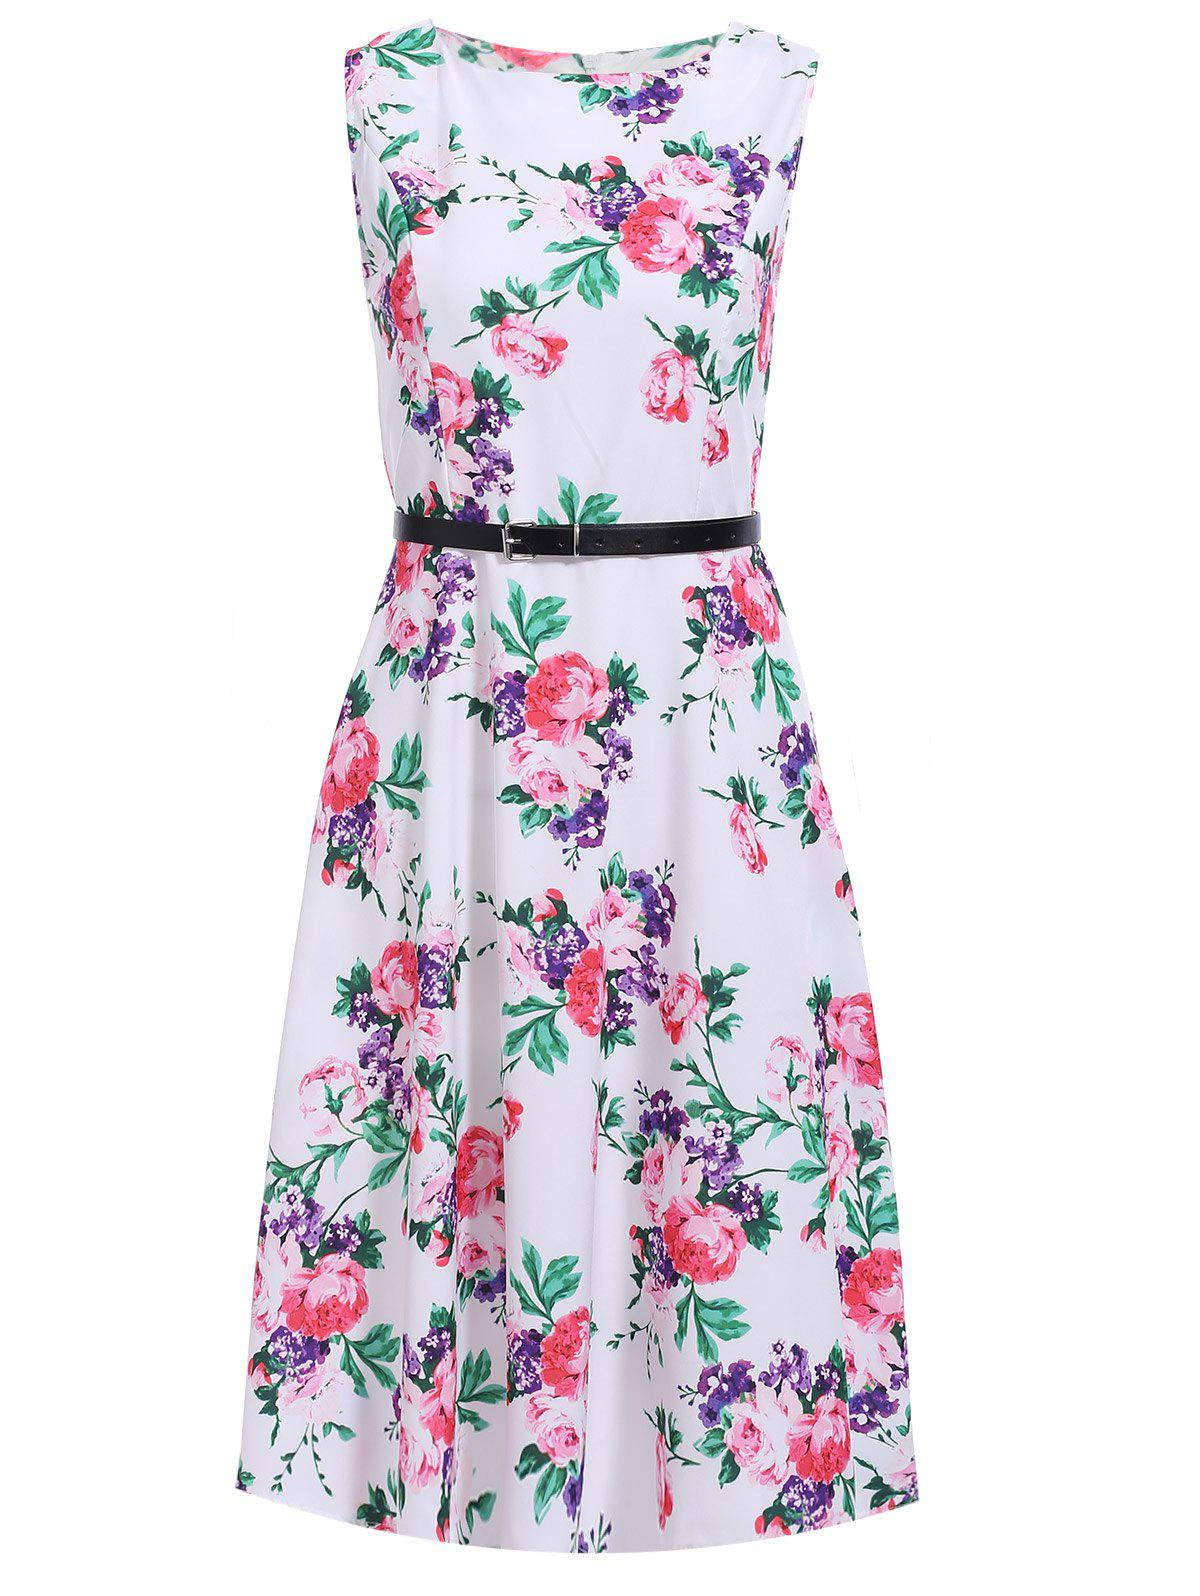 Chic Floral Print Belted Sleeveless Dress For Women - COLORMIX M